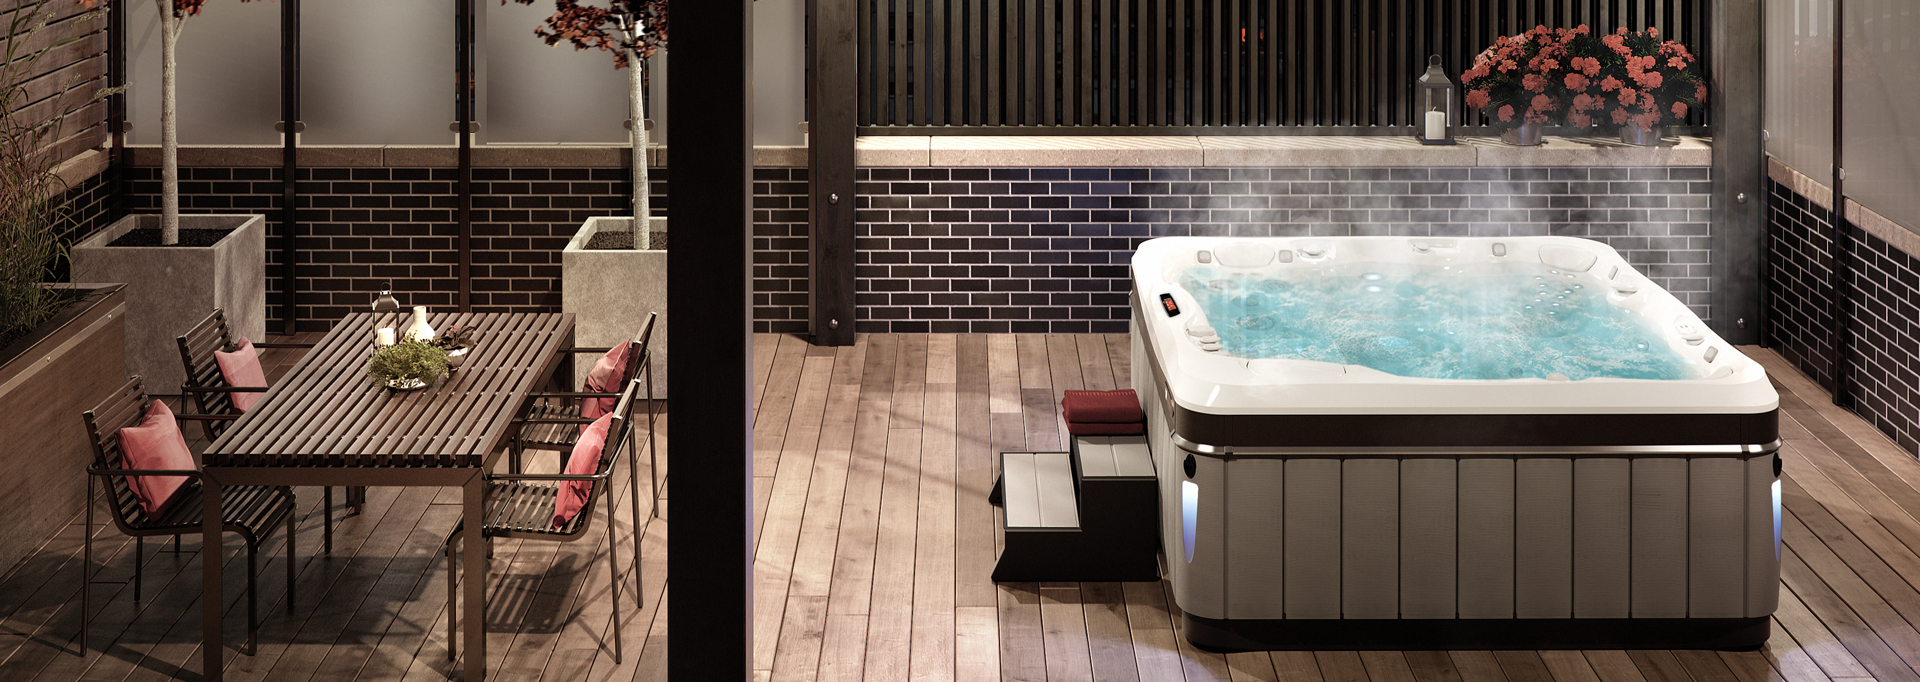 Finest Luxury Spas & Hot Tubs, Manchester